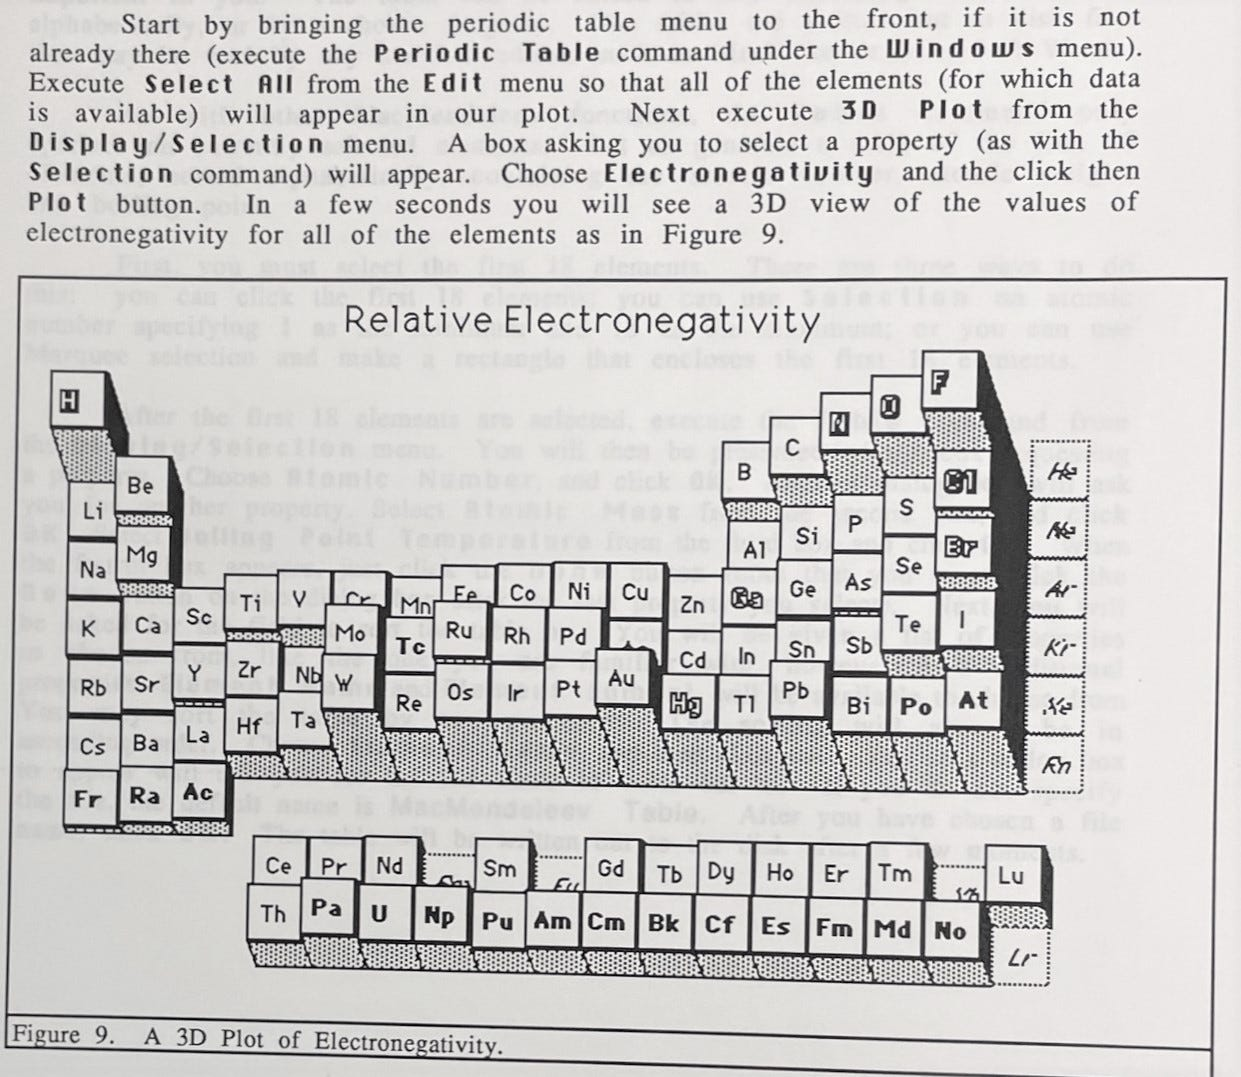 Some instructions on using the product MacMendeleev along with an image of the periodic table of elements where each element is raised as a bar chart relative to electronegativity value.